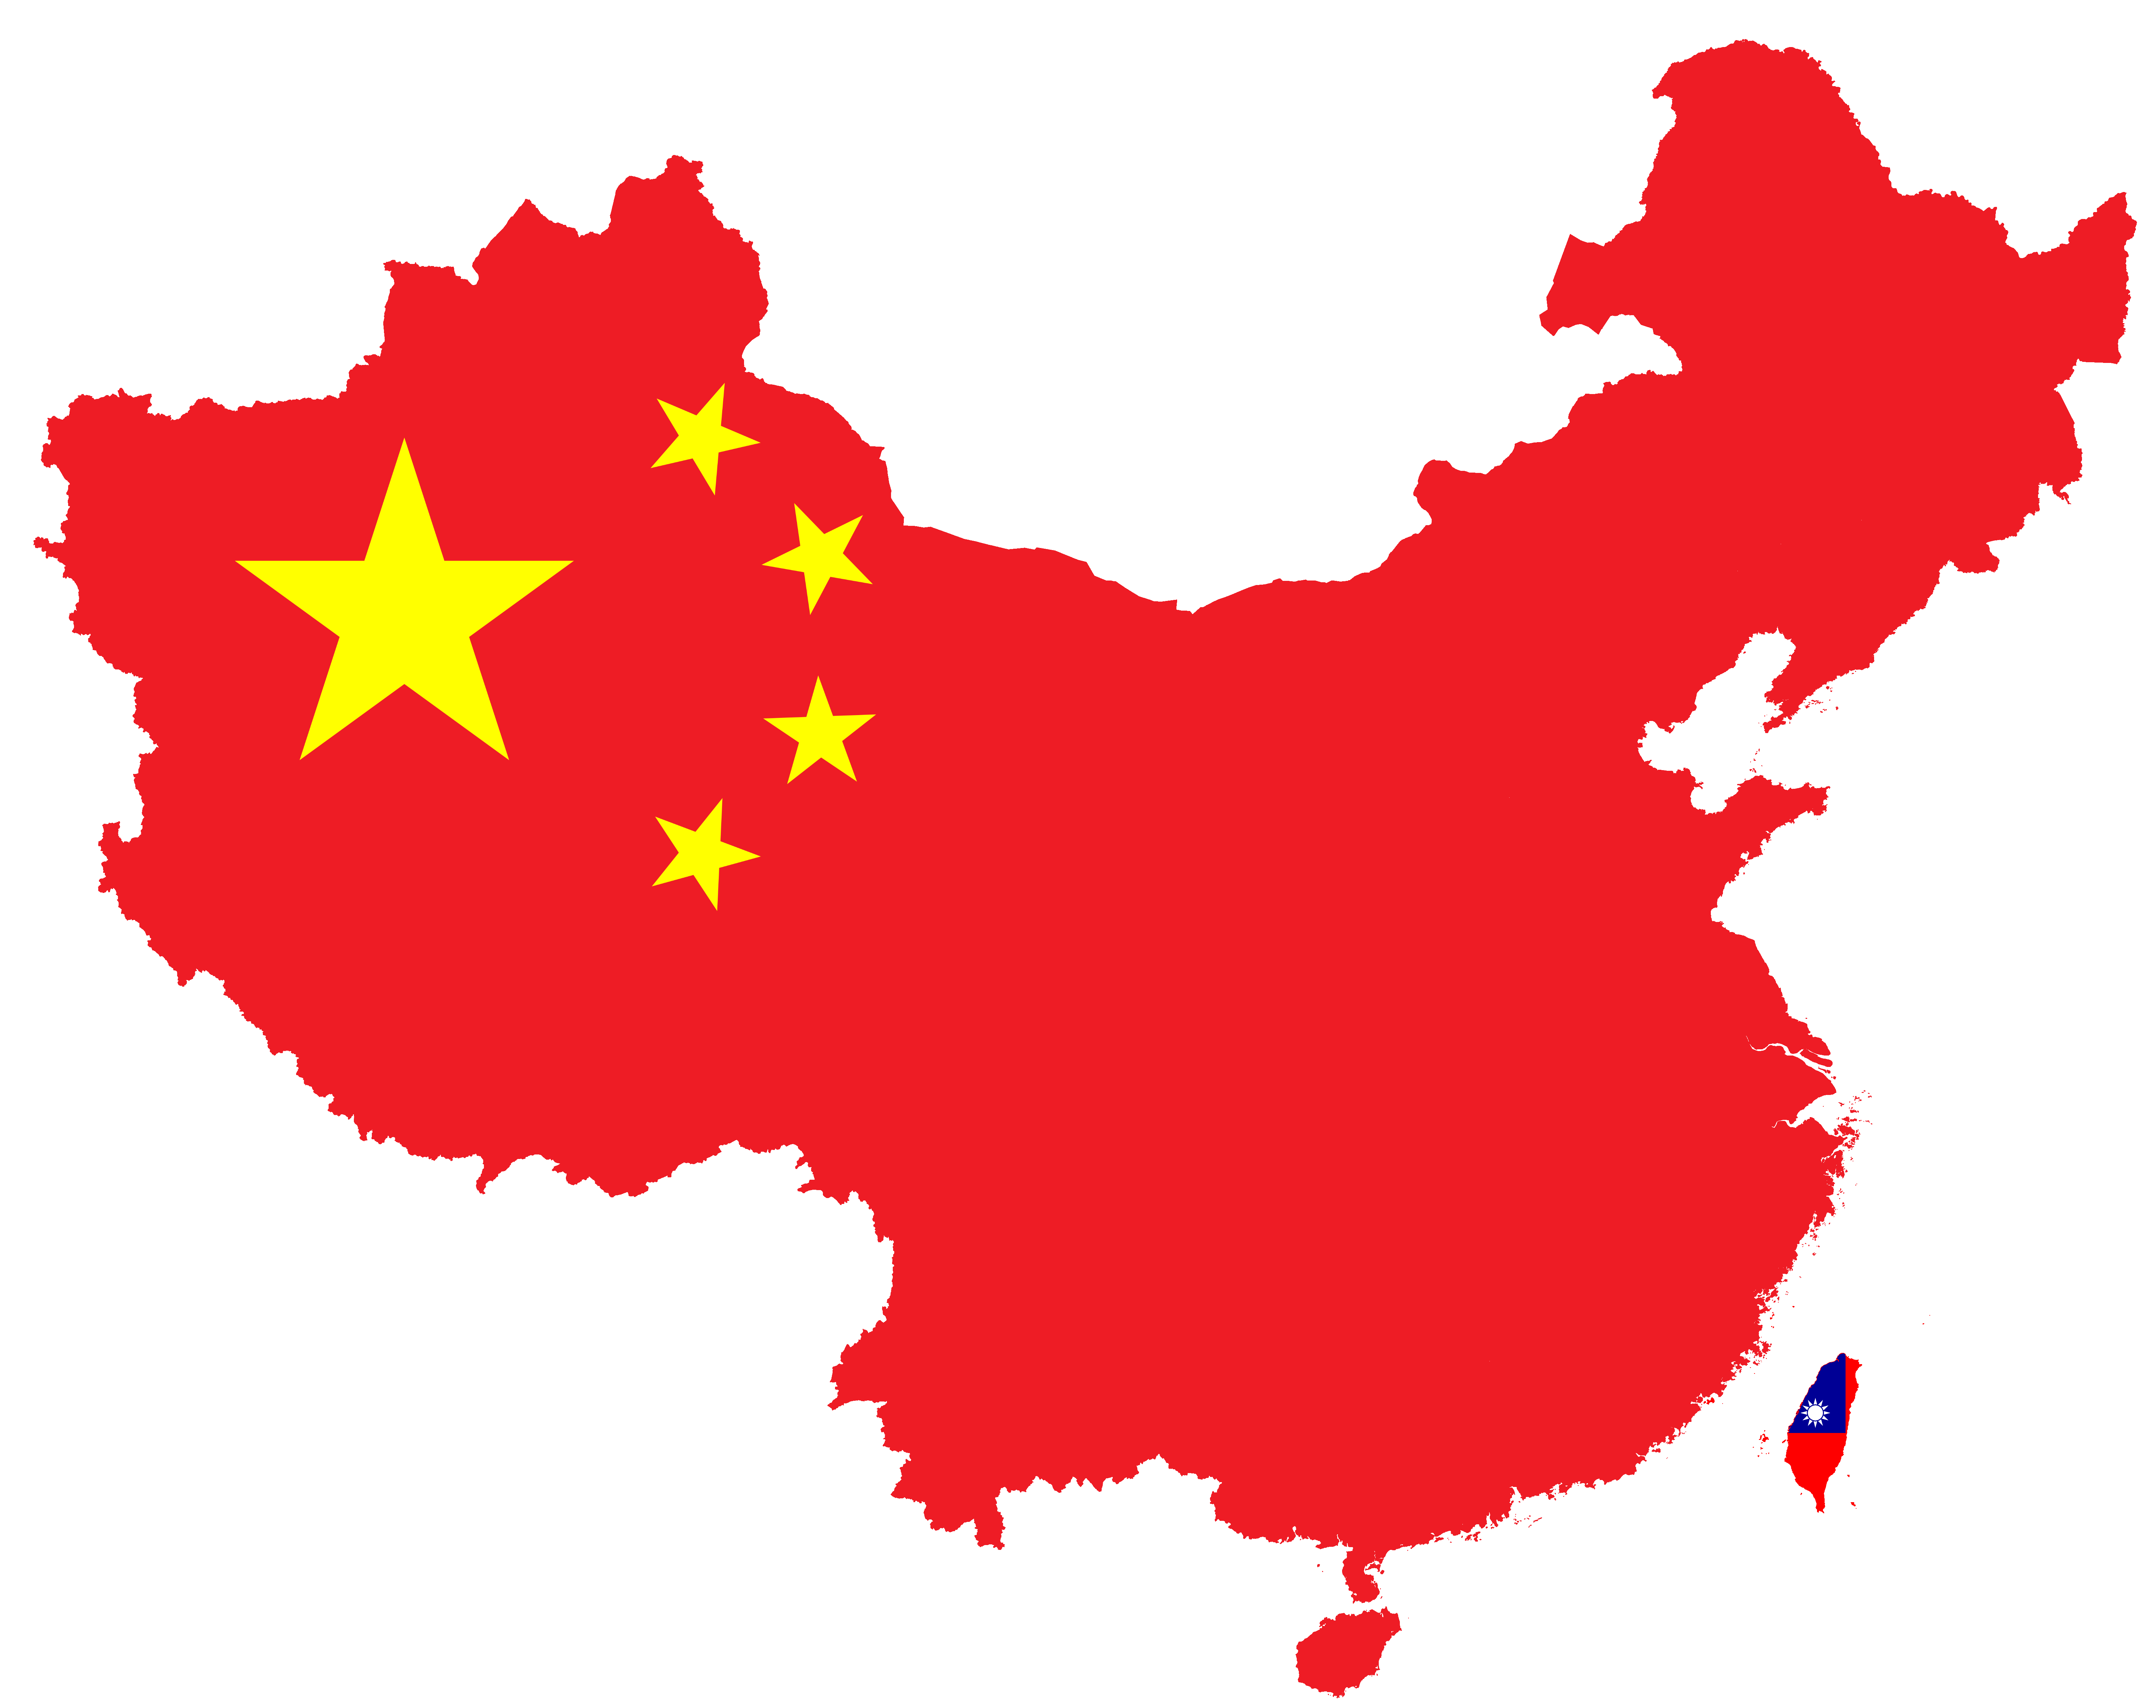 Map Of China And Taiwan File:Flag map of China & Taiwan.png   Wikimedia Commons